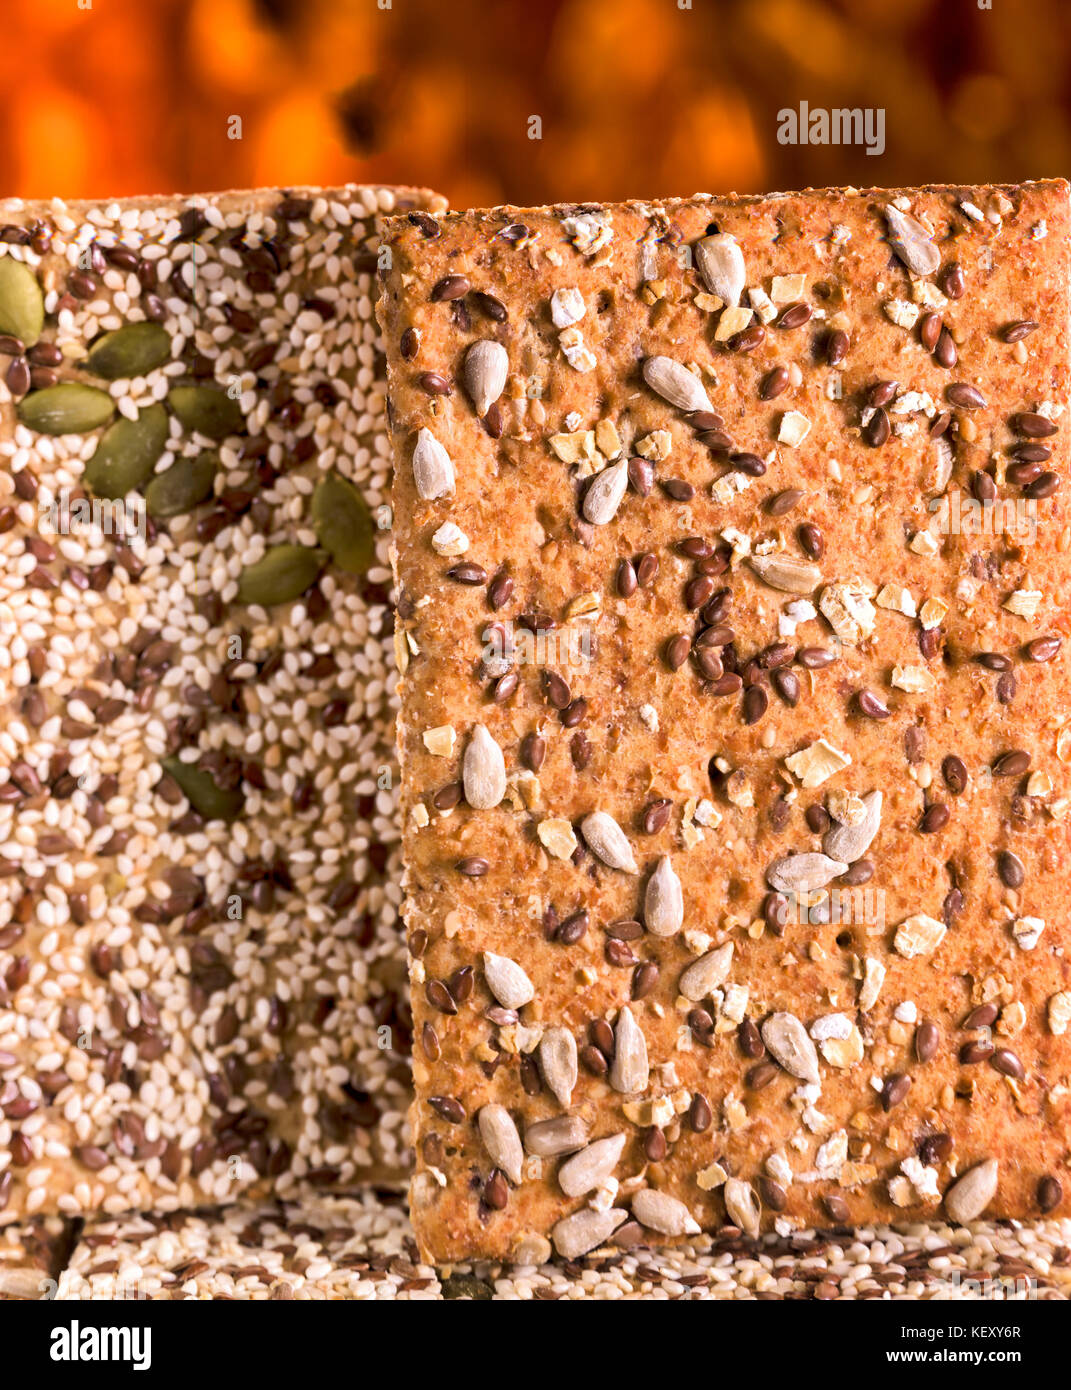 Two heavily seeded crisp breads as a still life photograph - Stock Image